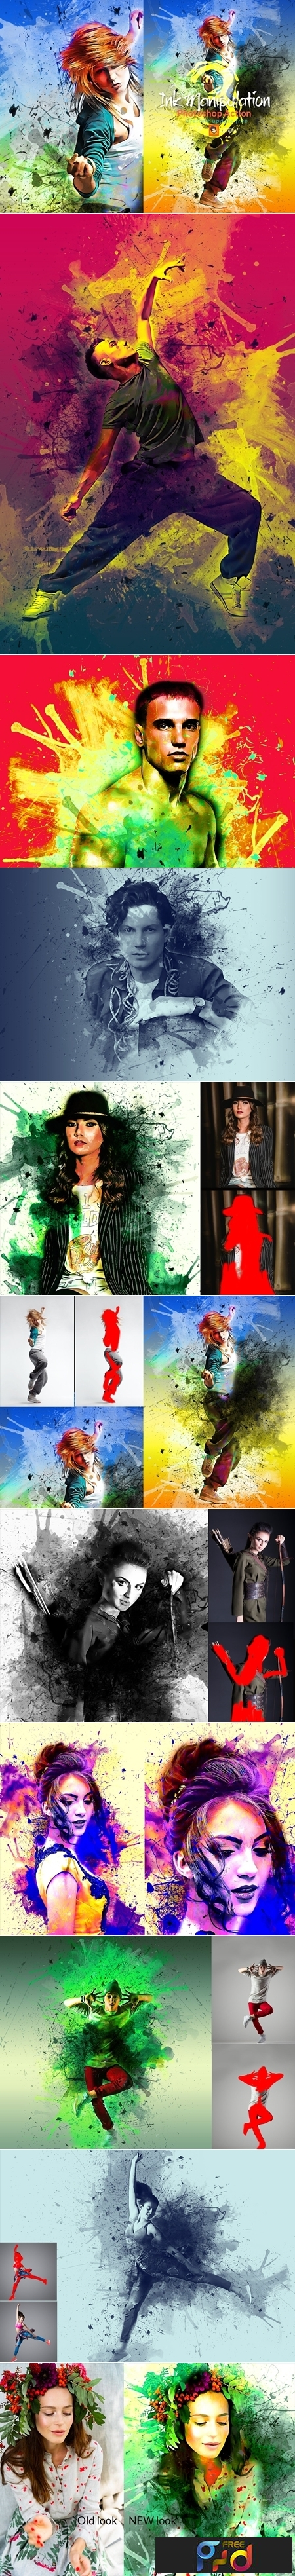 Ink Manipulation Photoshop Action 3 3565533 1